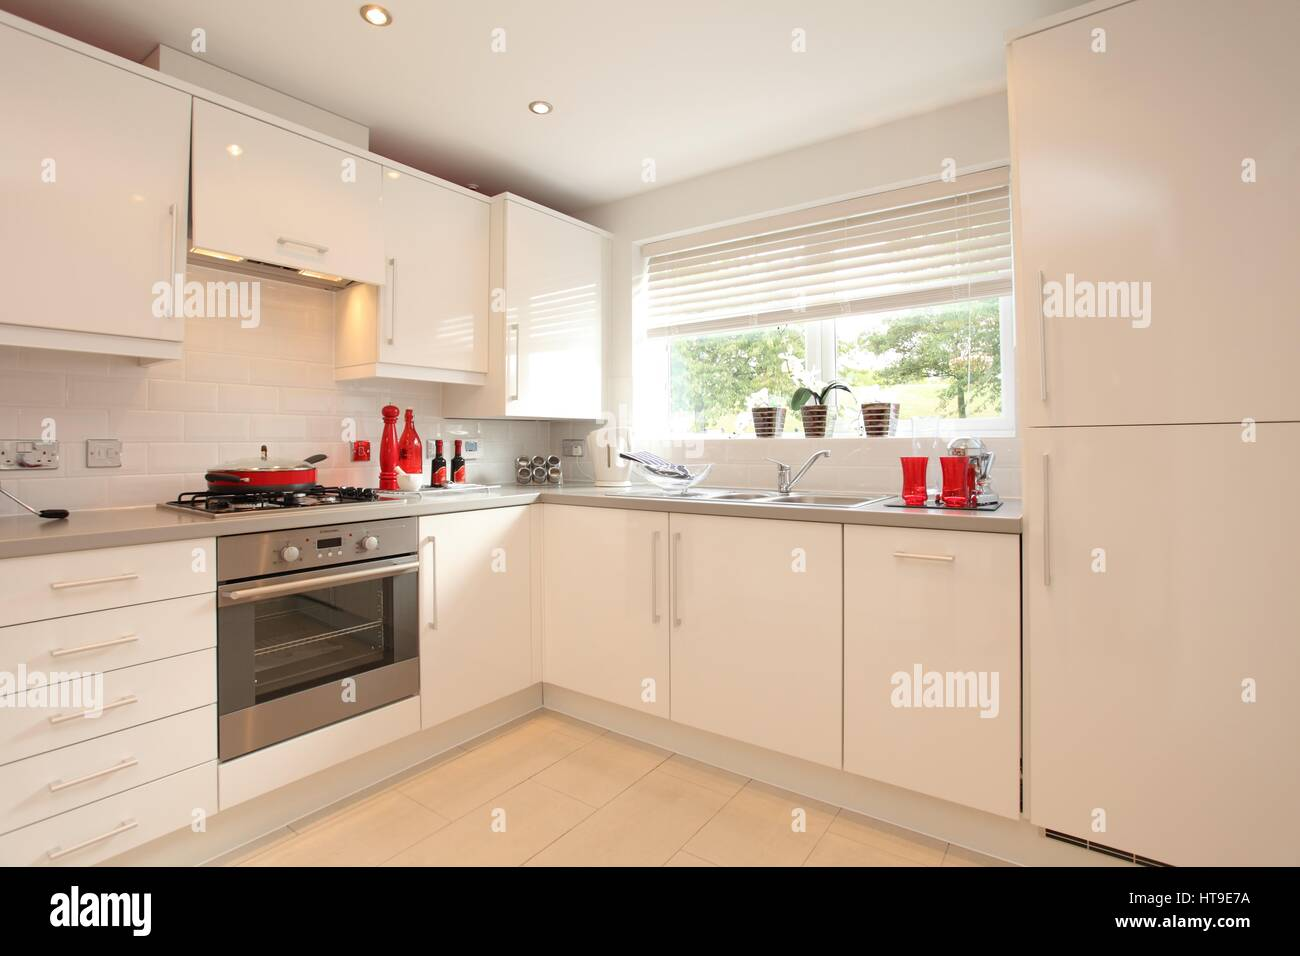 Home Interior Kitchen Modern Home New Build White Units Red